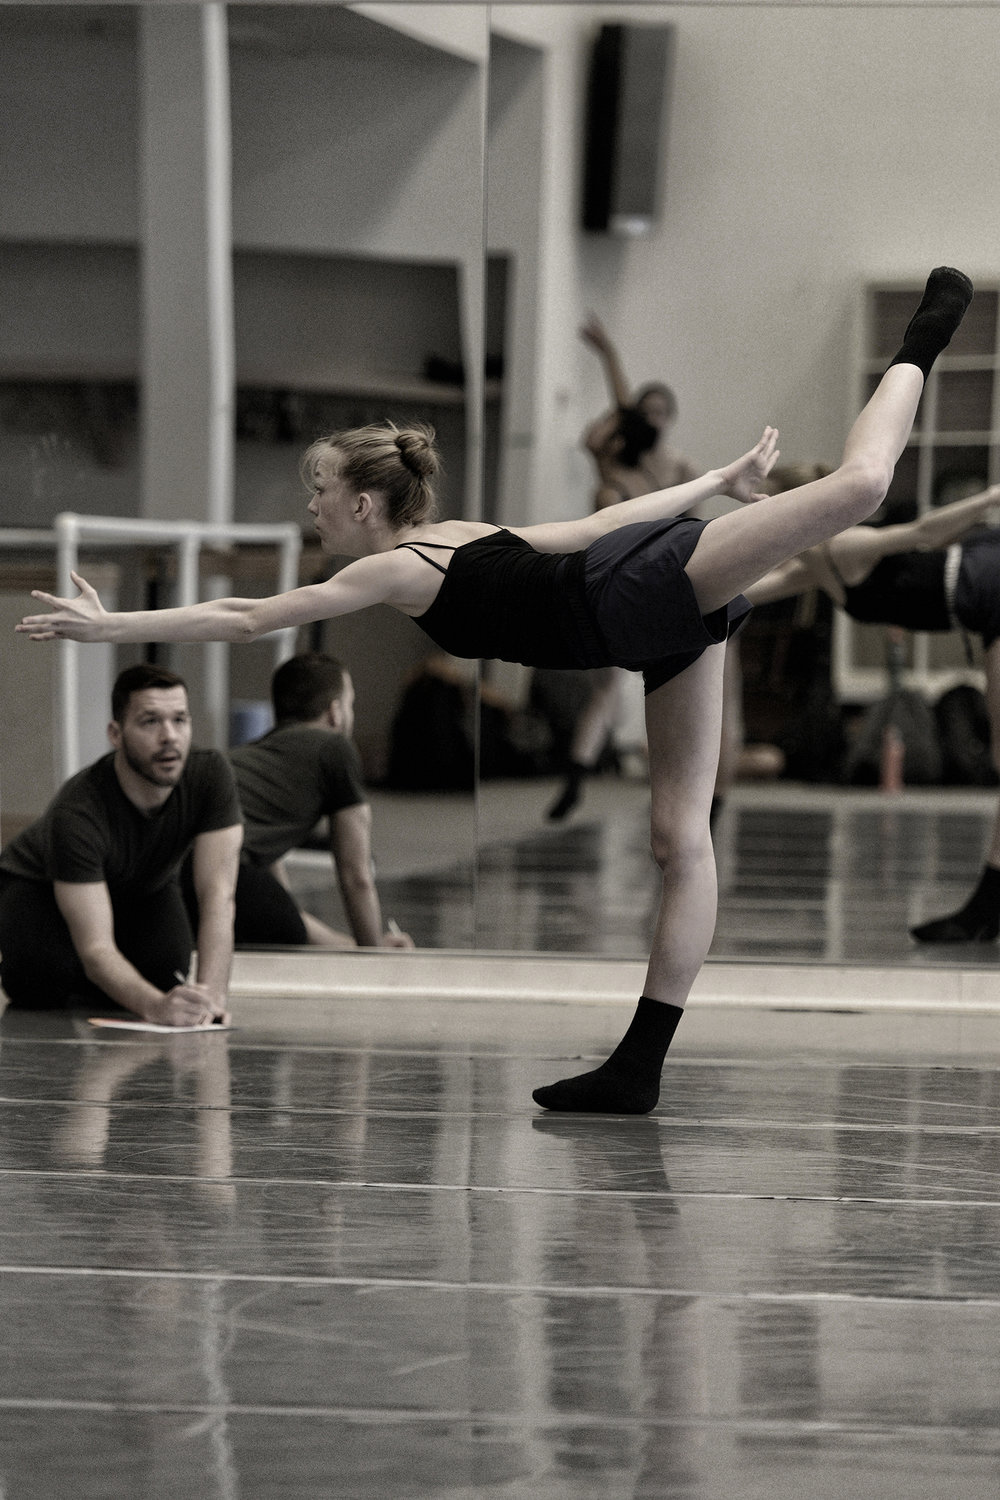 In rehearsal for a new work at Arts Umbrella (Vancouver) with Cordelia Pentland. Photo by Michael Slobodian, courtesy of Arts Umbrella.